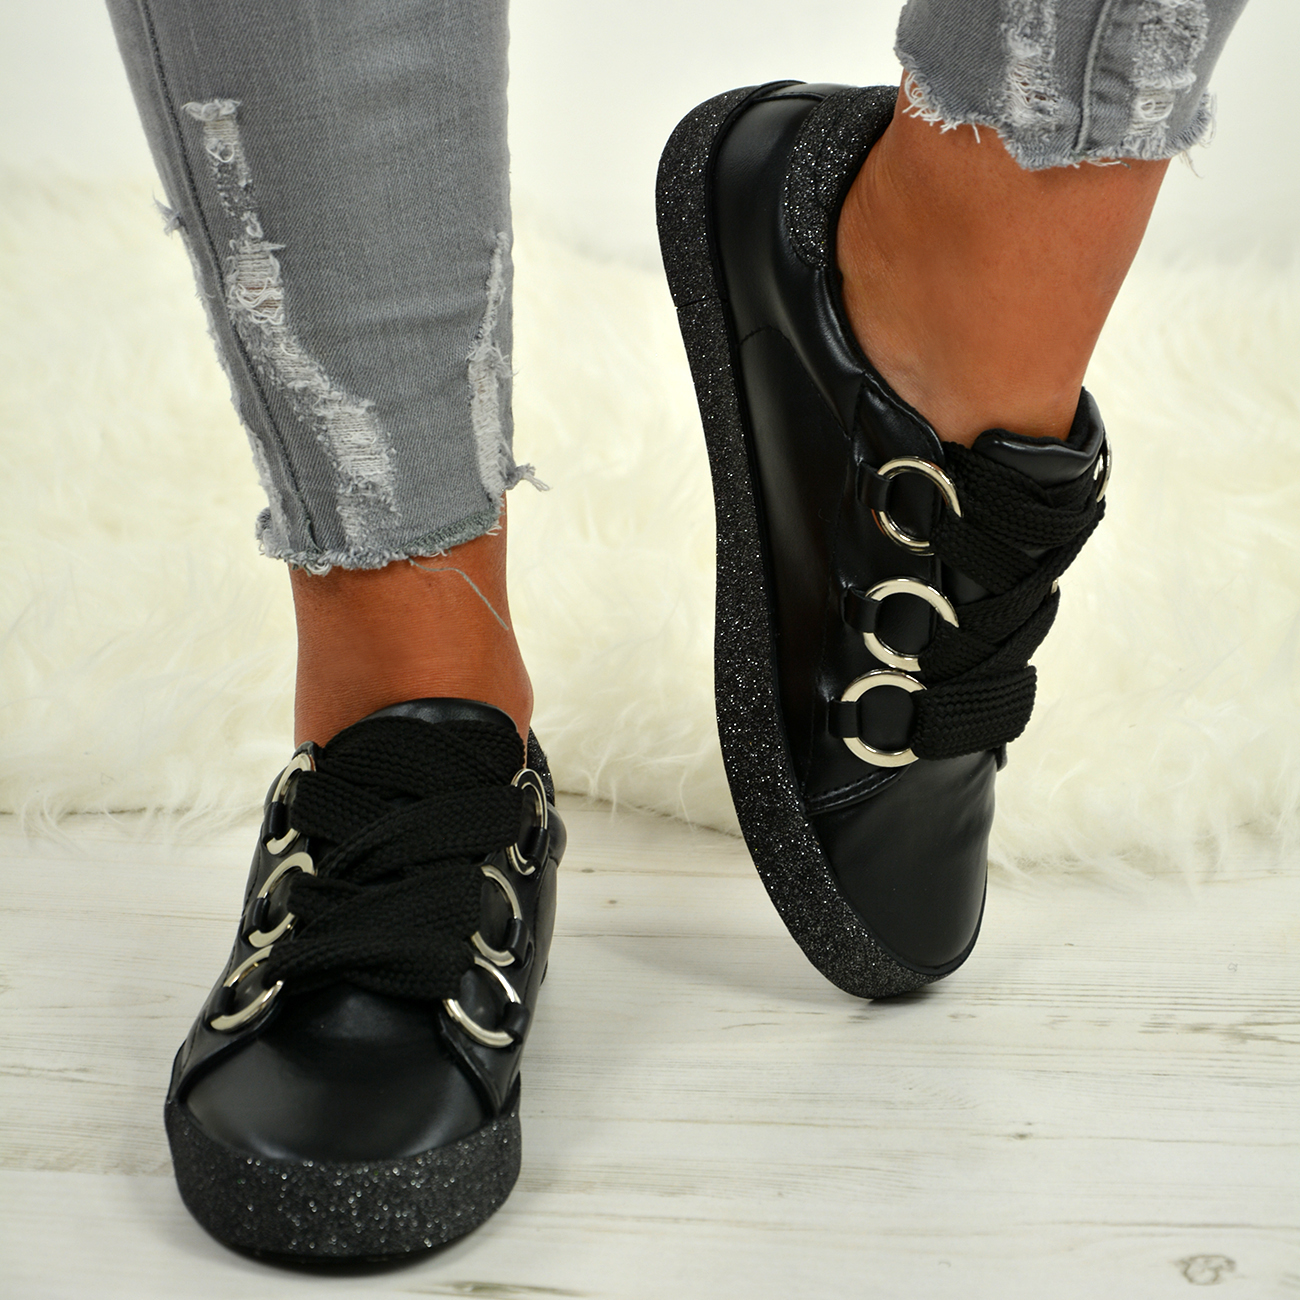 LADIES-WOMENS-GLITTER-SNEAKERS-SPARKLE-TRAINERS-LACE-UP-PLIMSOLL-PUMPS-SHOES thumbnail 10